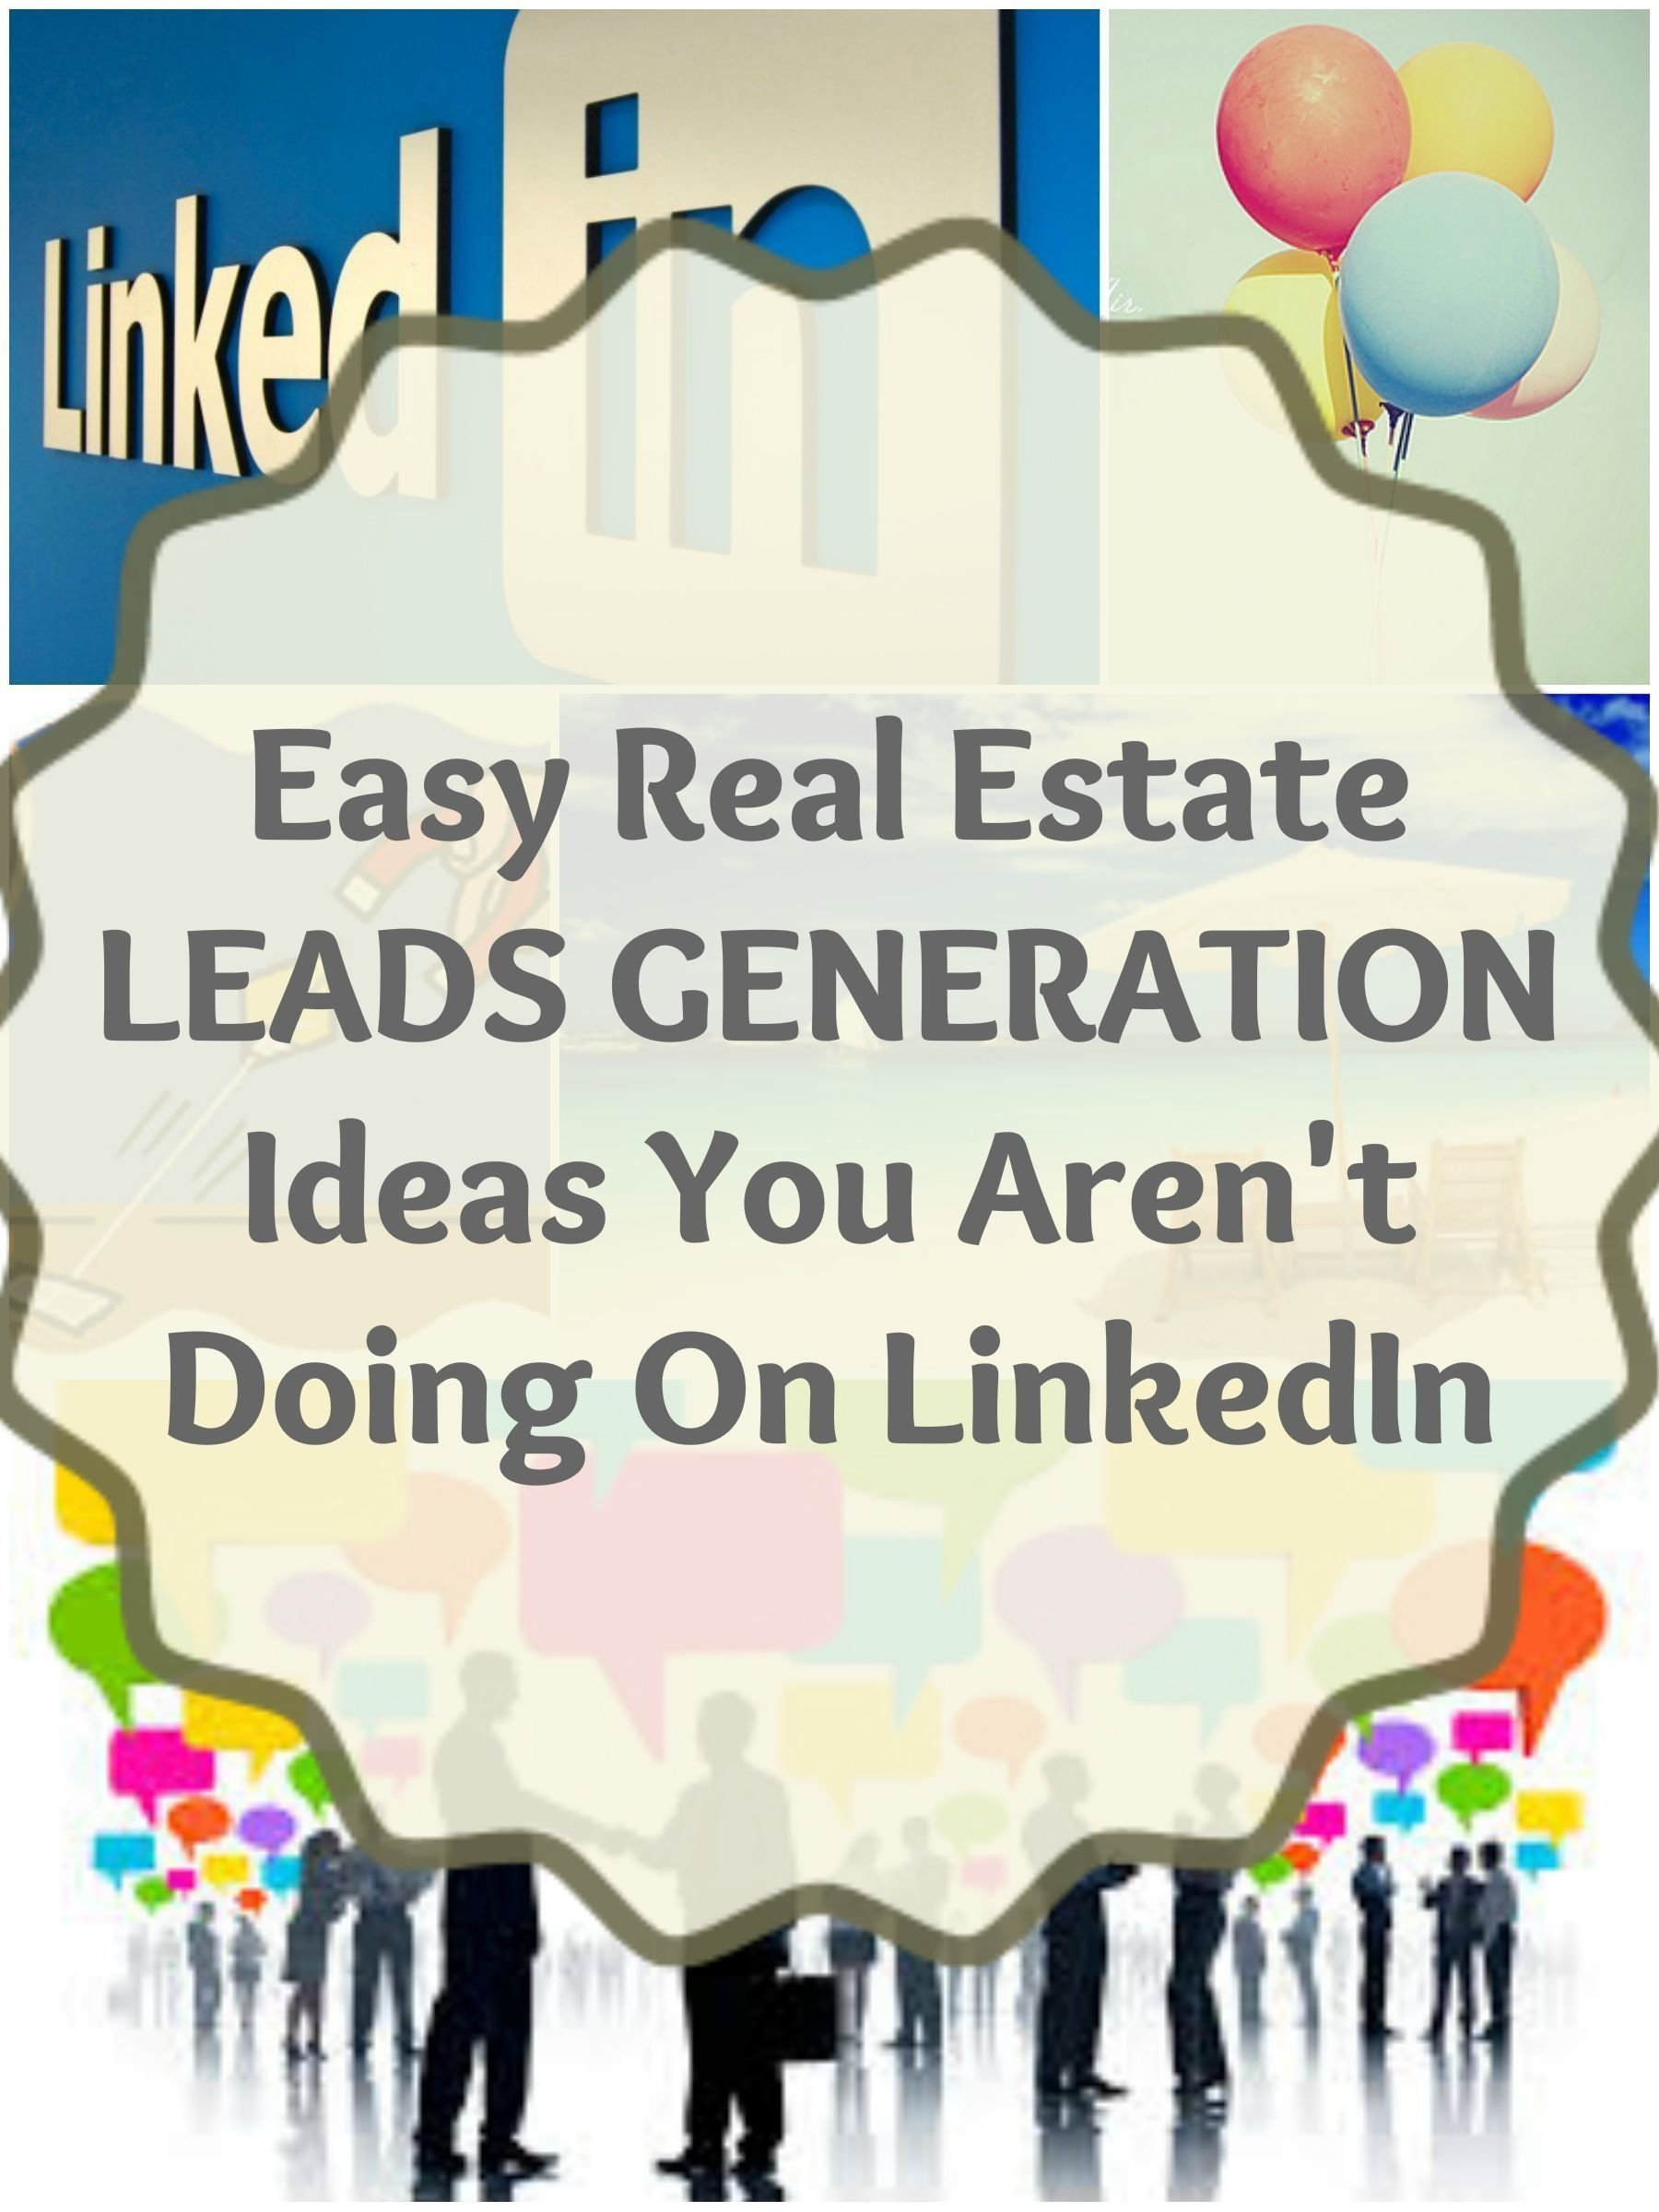 10 Unique Real Estate Lead Generation Ideas real estate lead generation ideas you arent doing on linkedin 2020